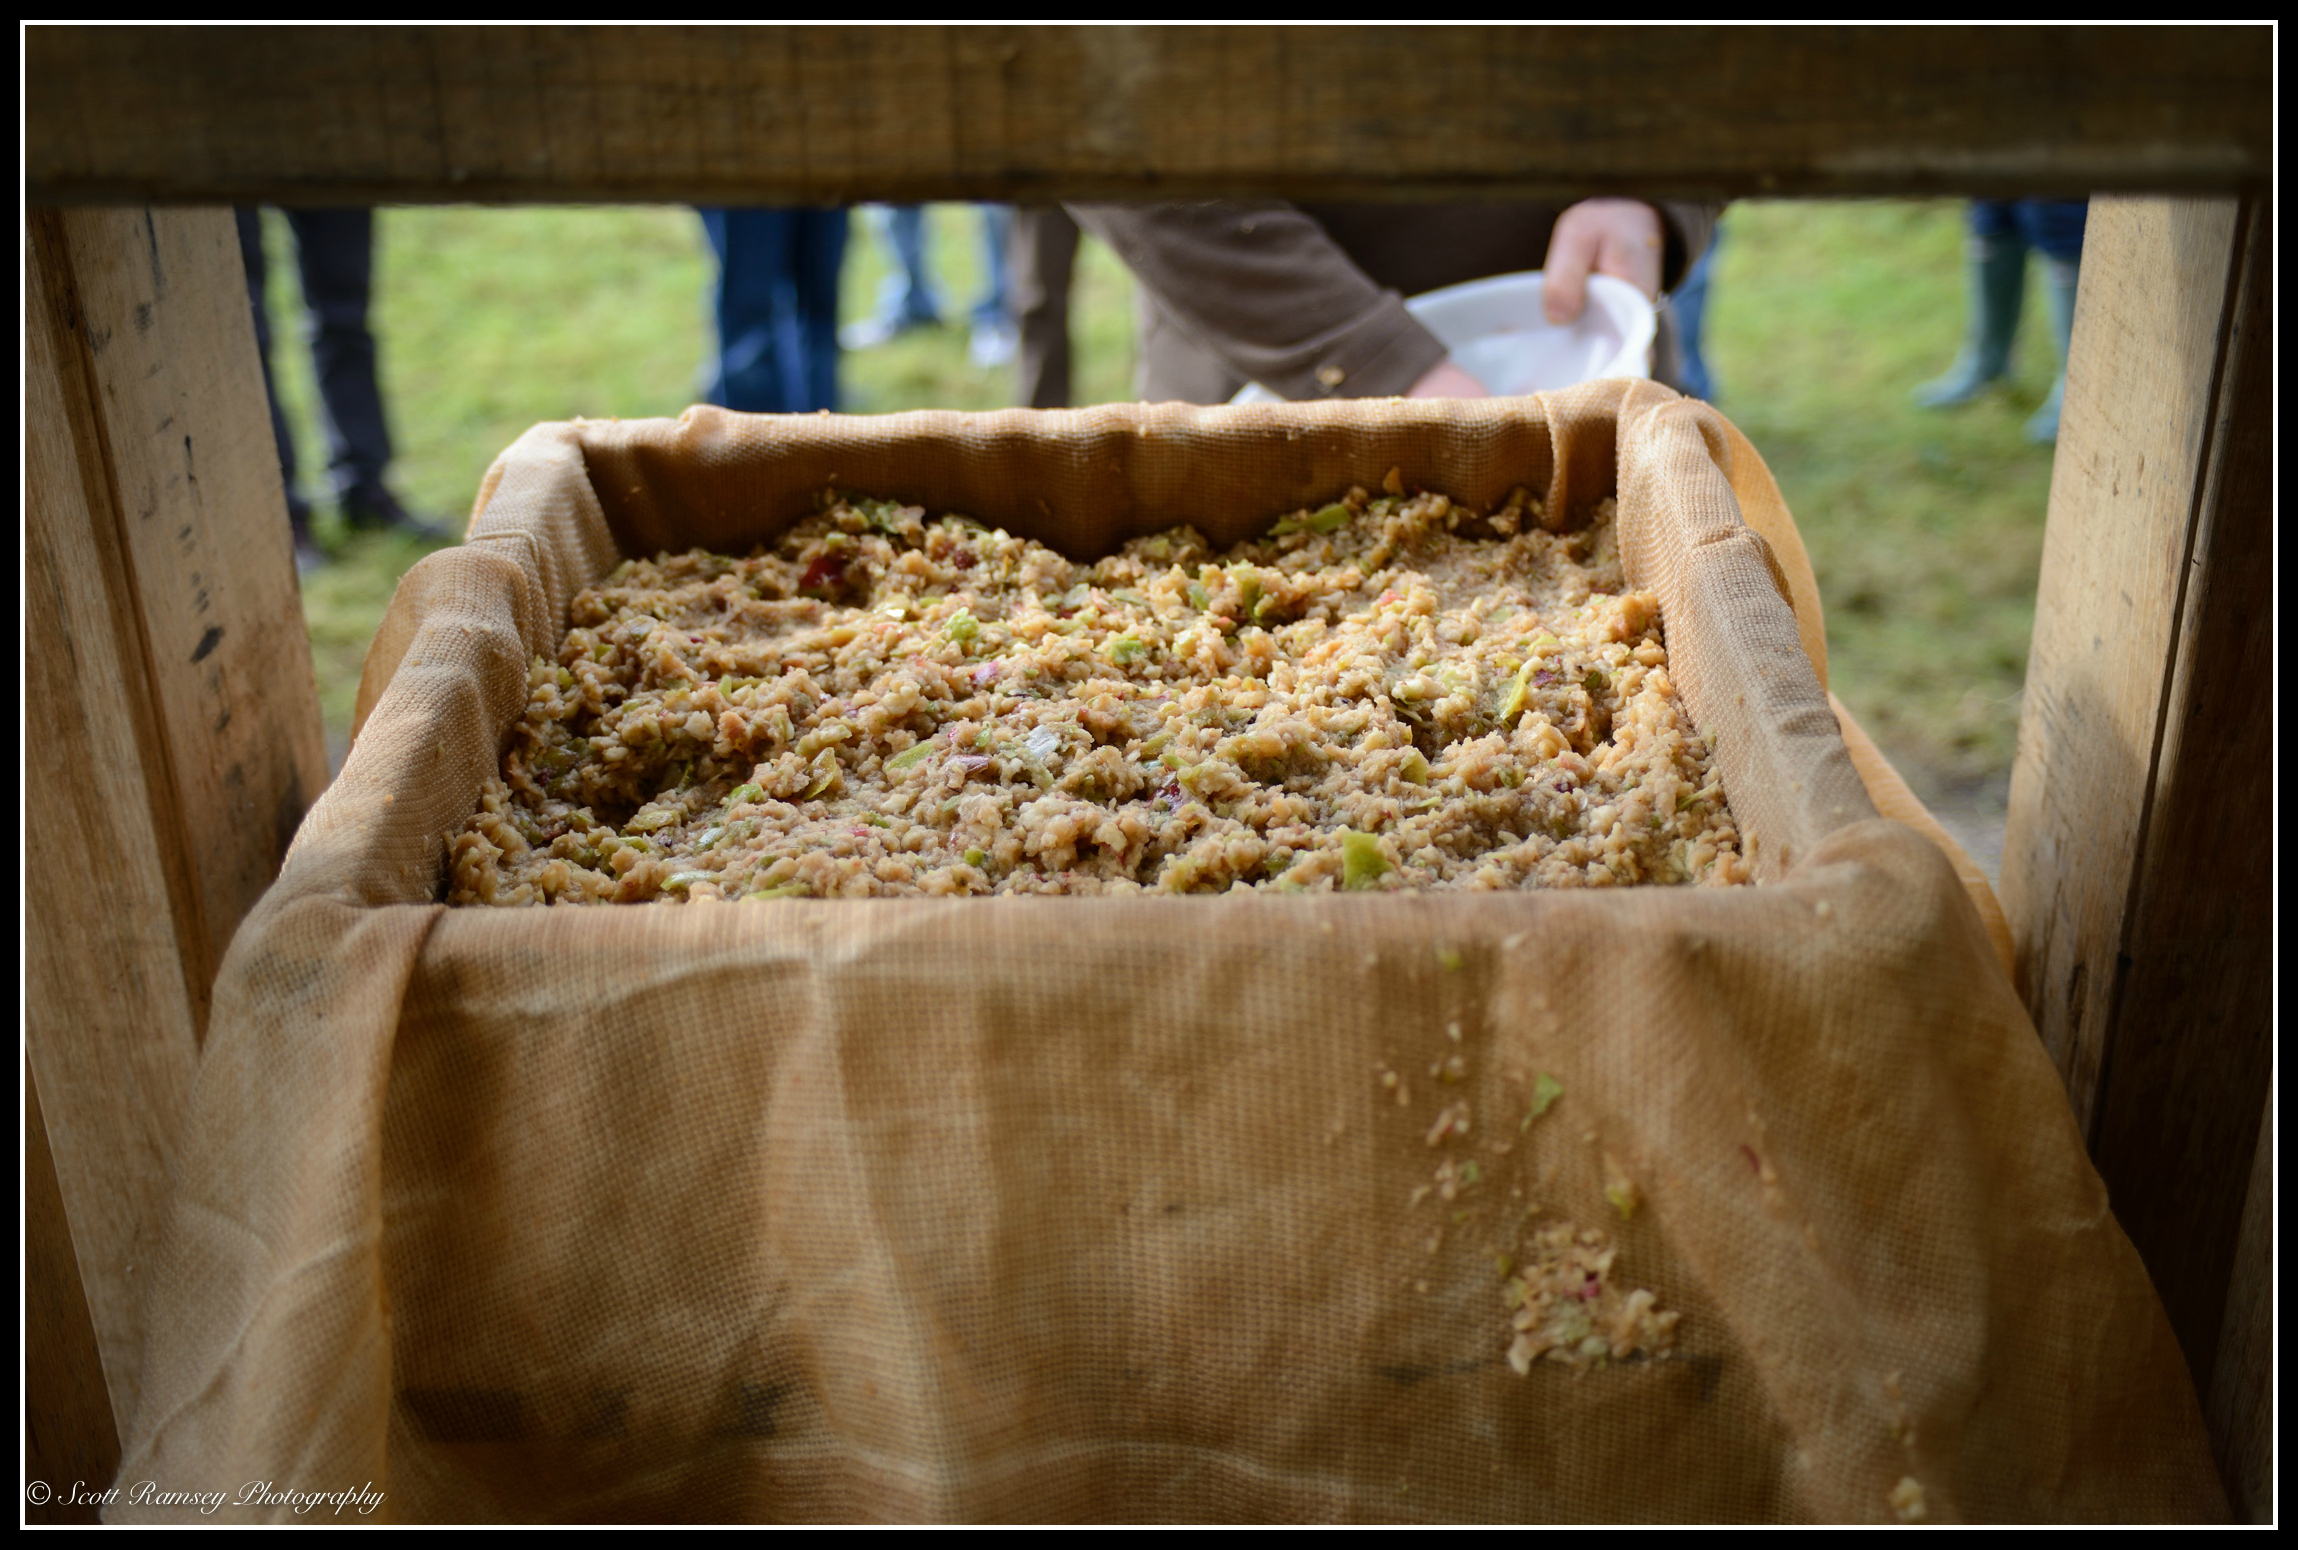 After mulching, the apple mixture is   spread and wrapped in hessian cloth on  a traditional rack and cloth oak cider press.